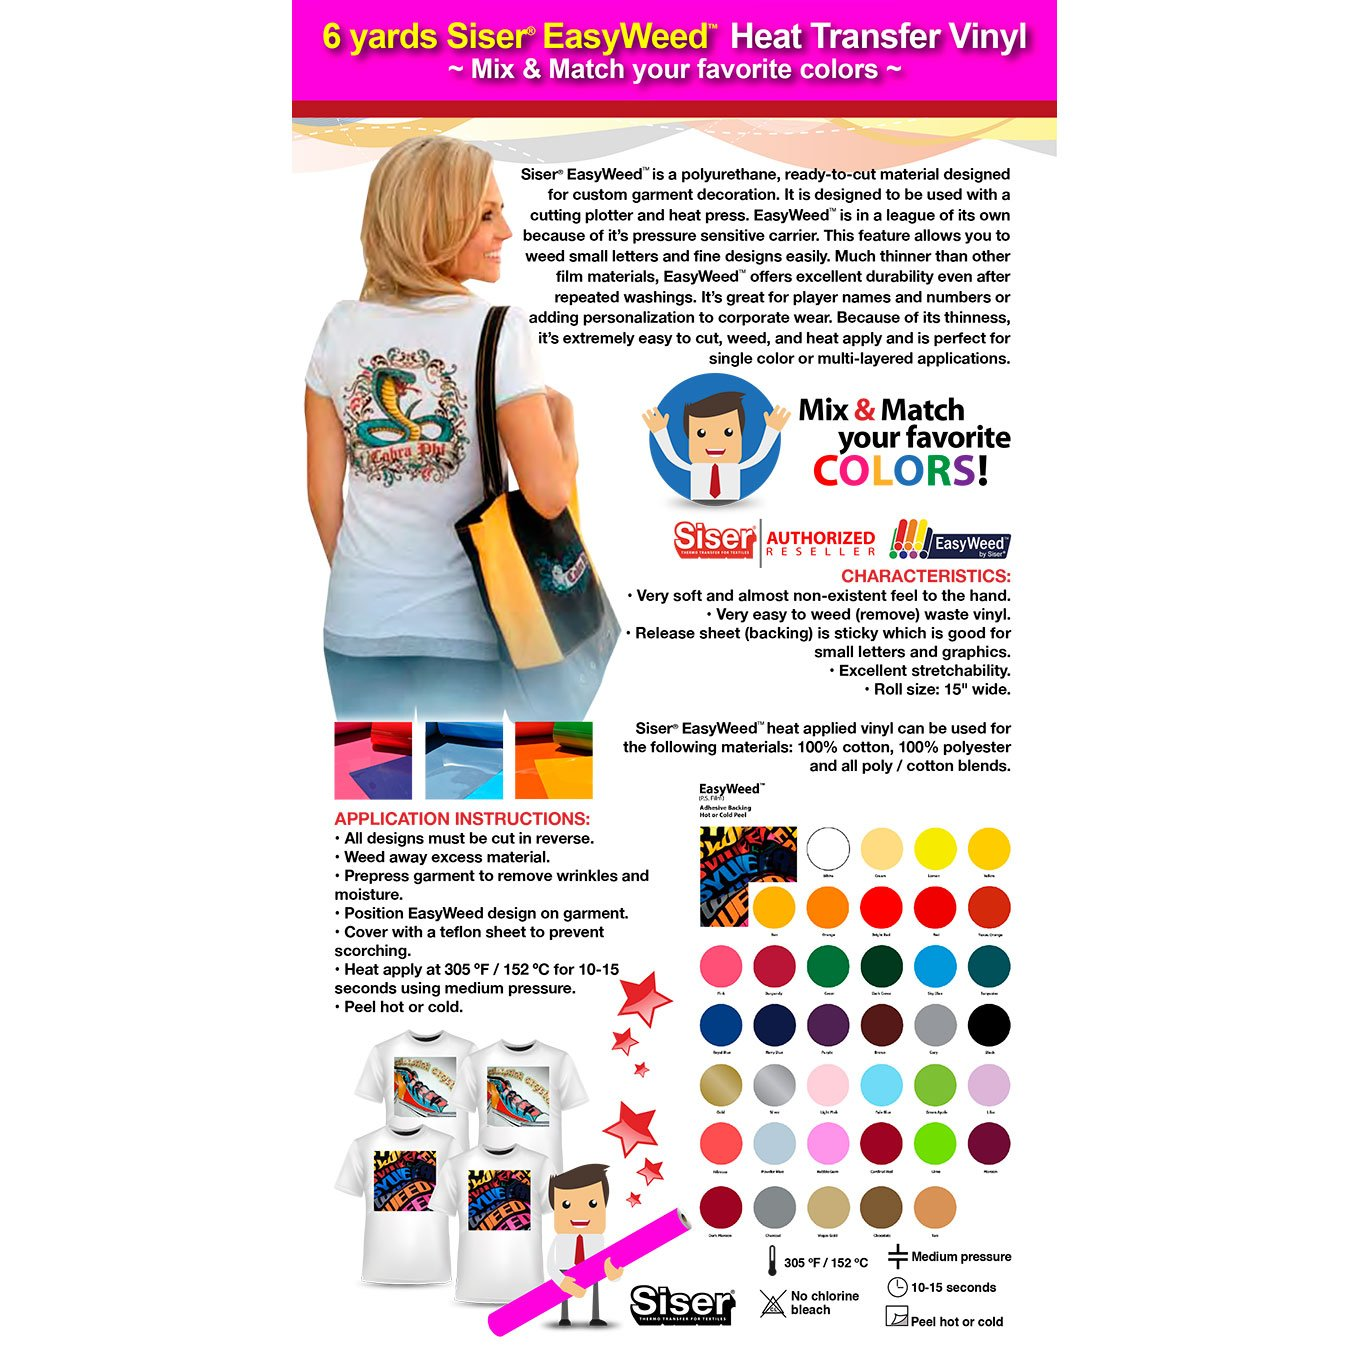 Siser Easyweed - GERCUTTER Store - 6 Yards SISER EASYWEED Heat Transfer  Vinyl (Mix & Match your favorite colors)